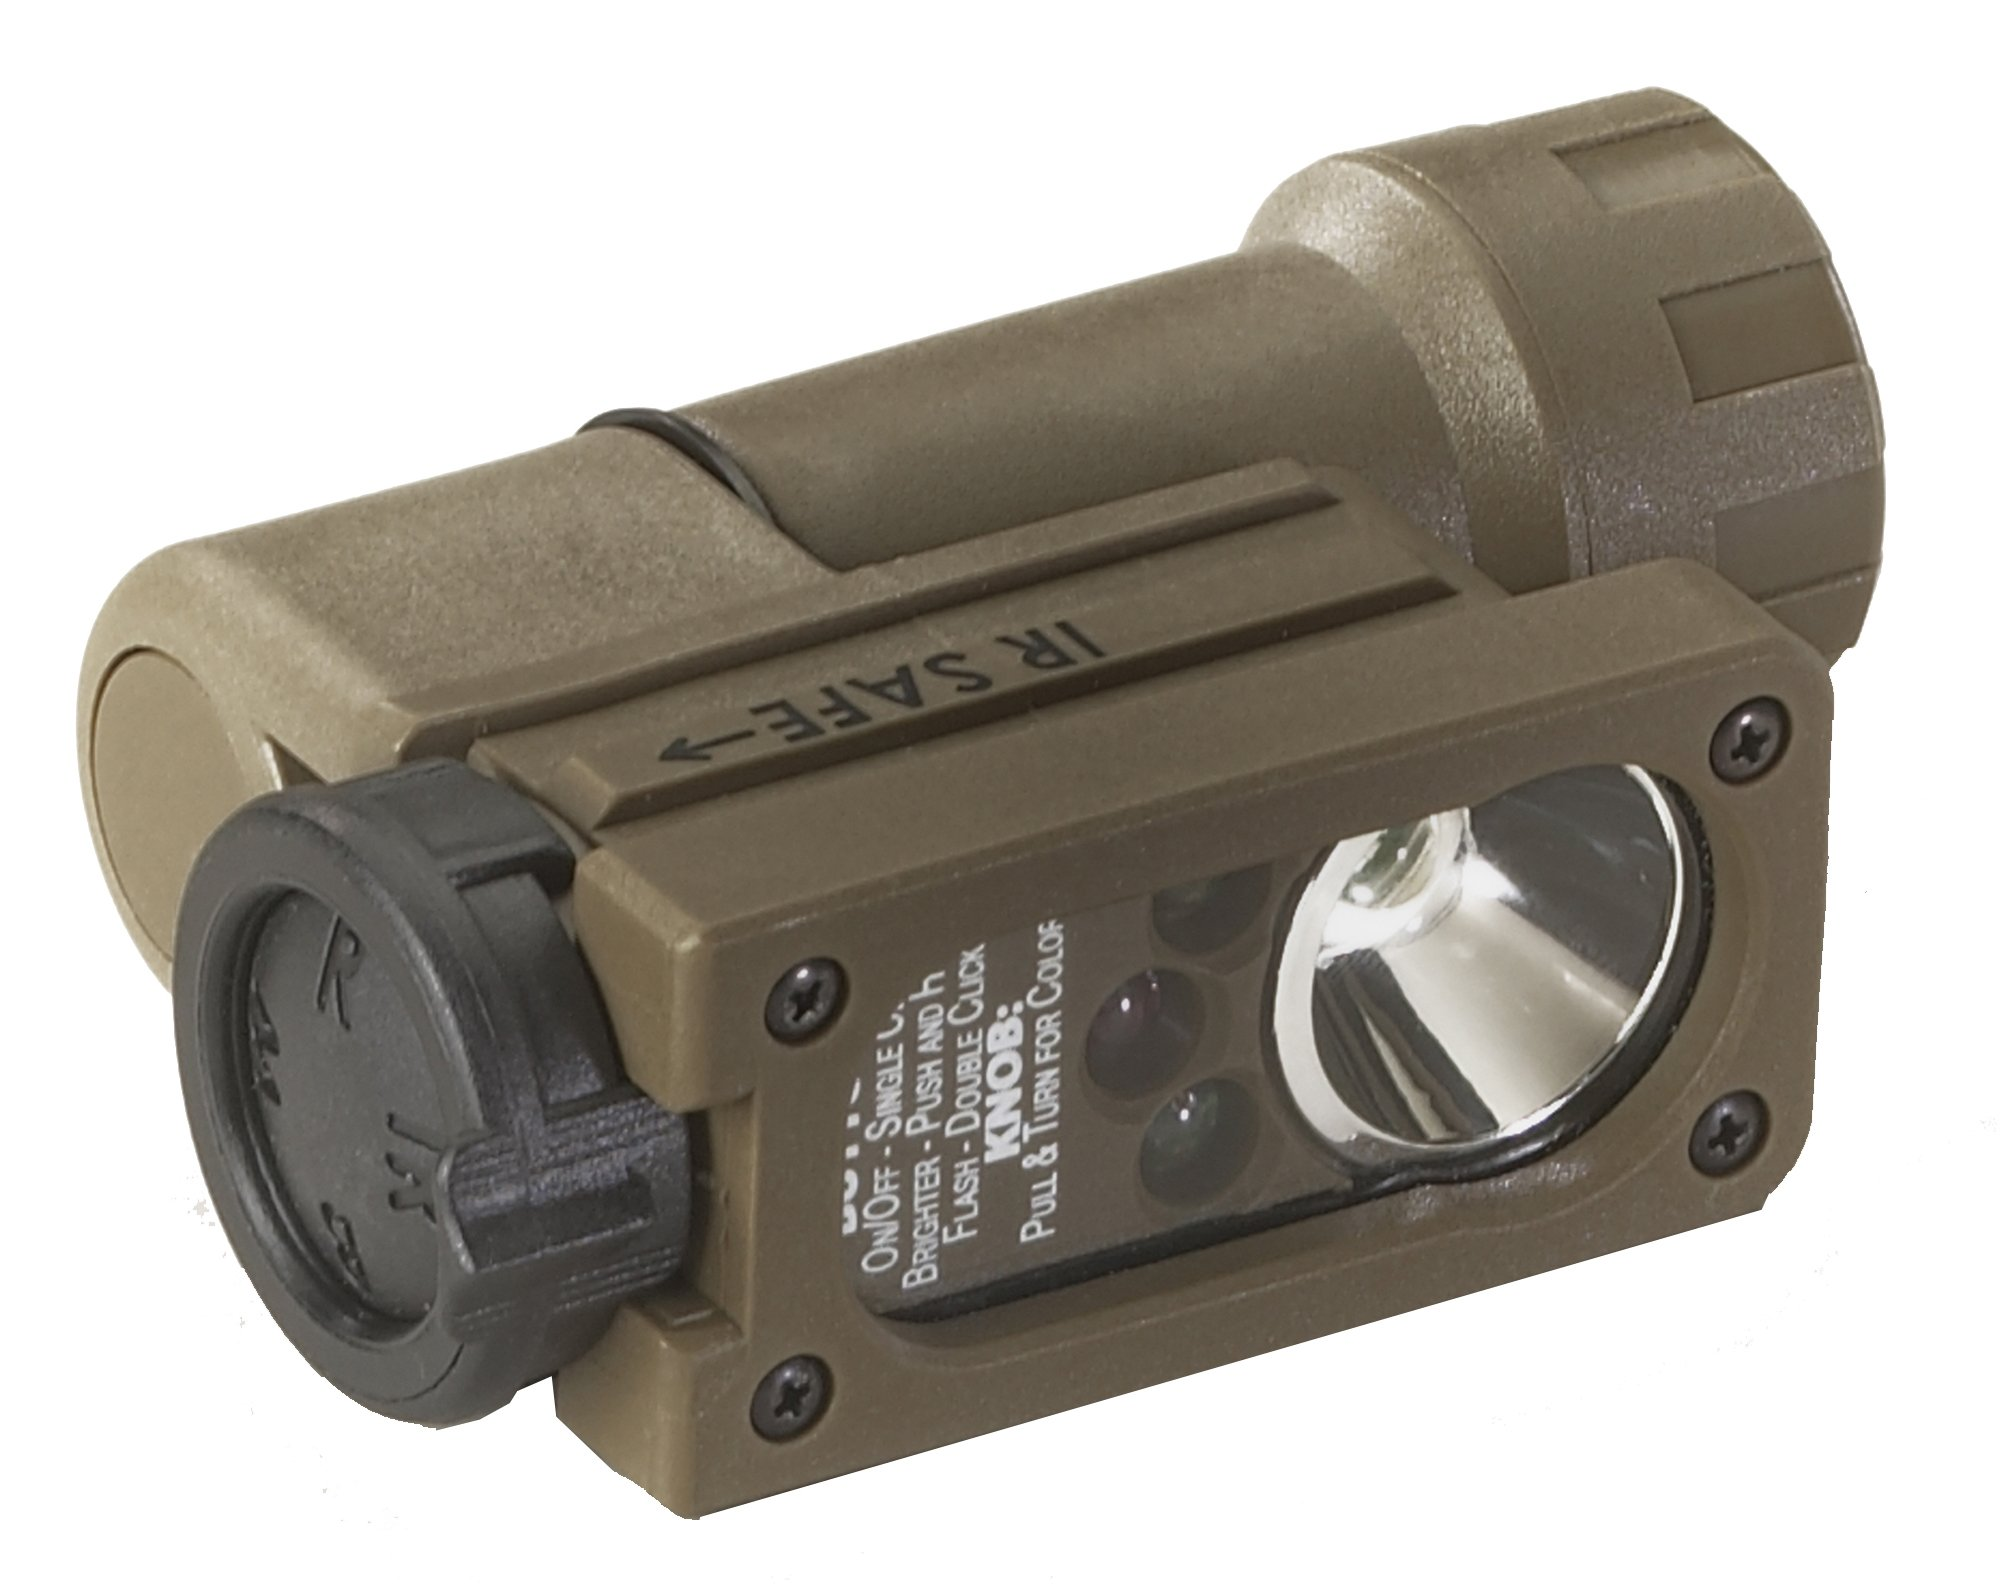 Streamlight 14101 Sidewinder Compact Military Flashlight with C4 LEDs, Helmet Mount and CR123A Lithium Battery, Green - 55 Lumens